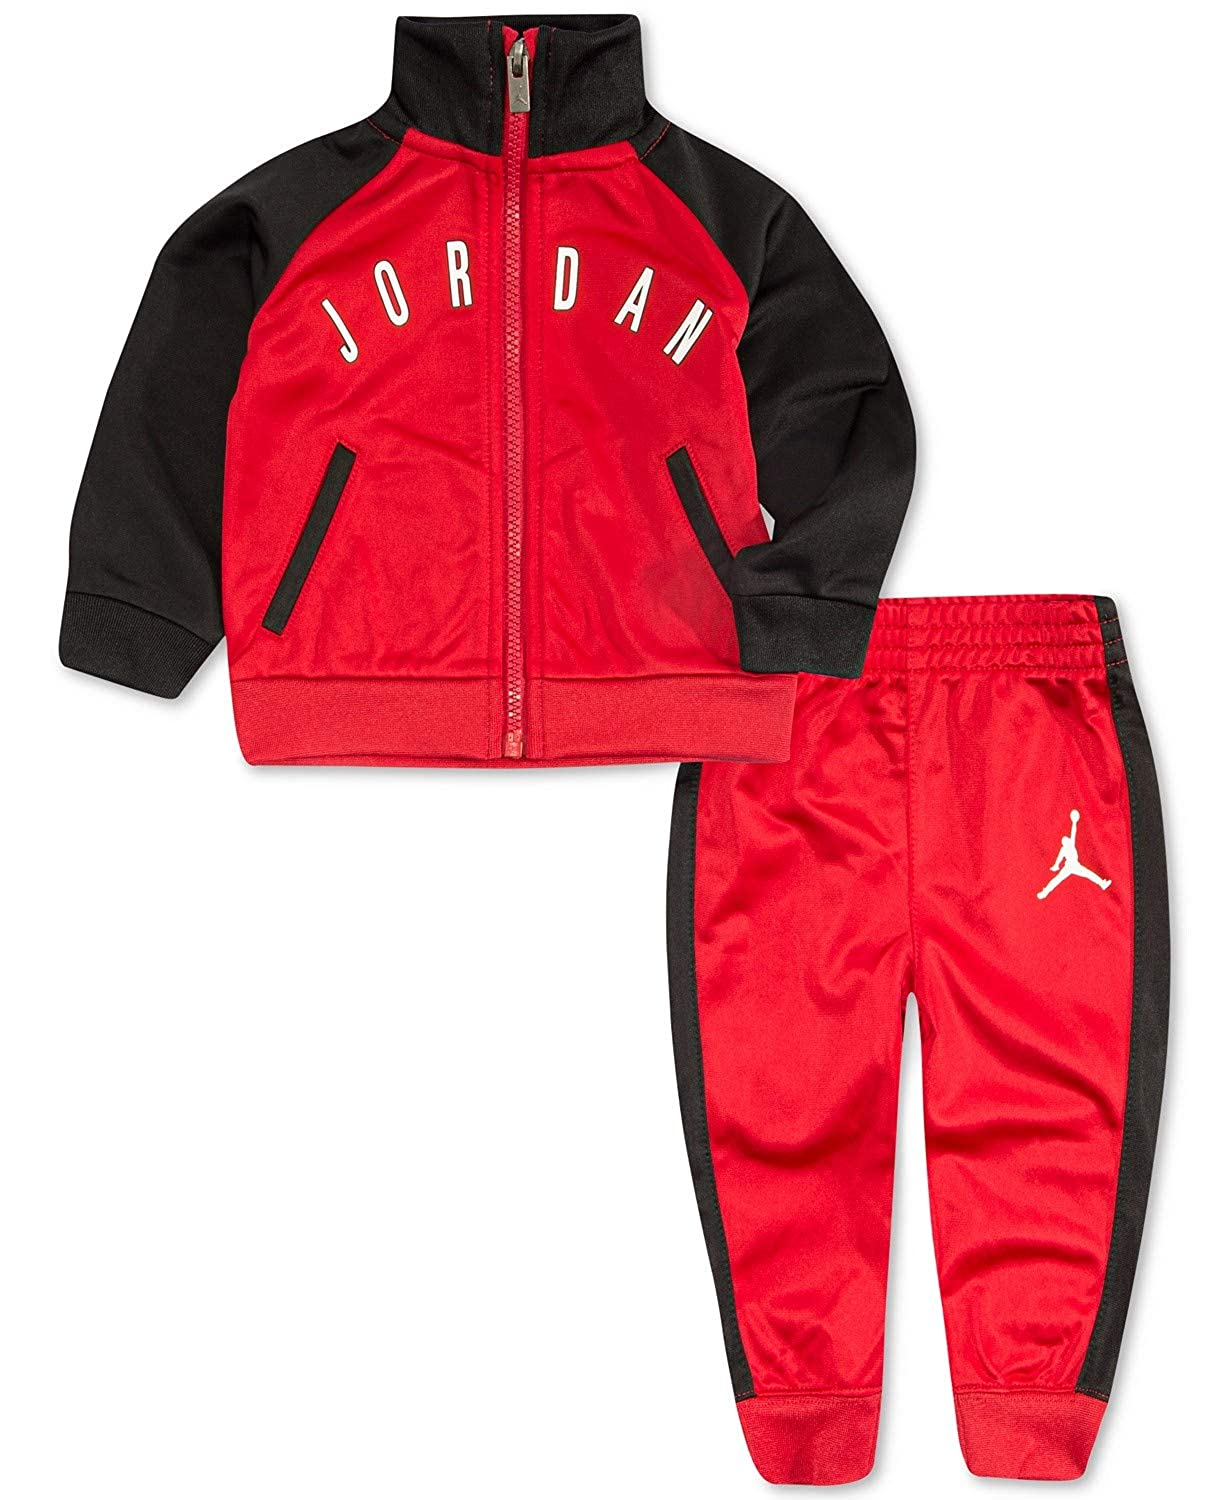 Jordan Little Boys 2-Pc Tricot Colorblocked Jacket /& Pants Set Size 7 $48.00 Red and Black